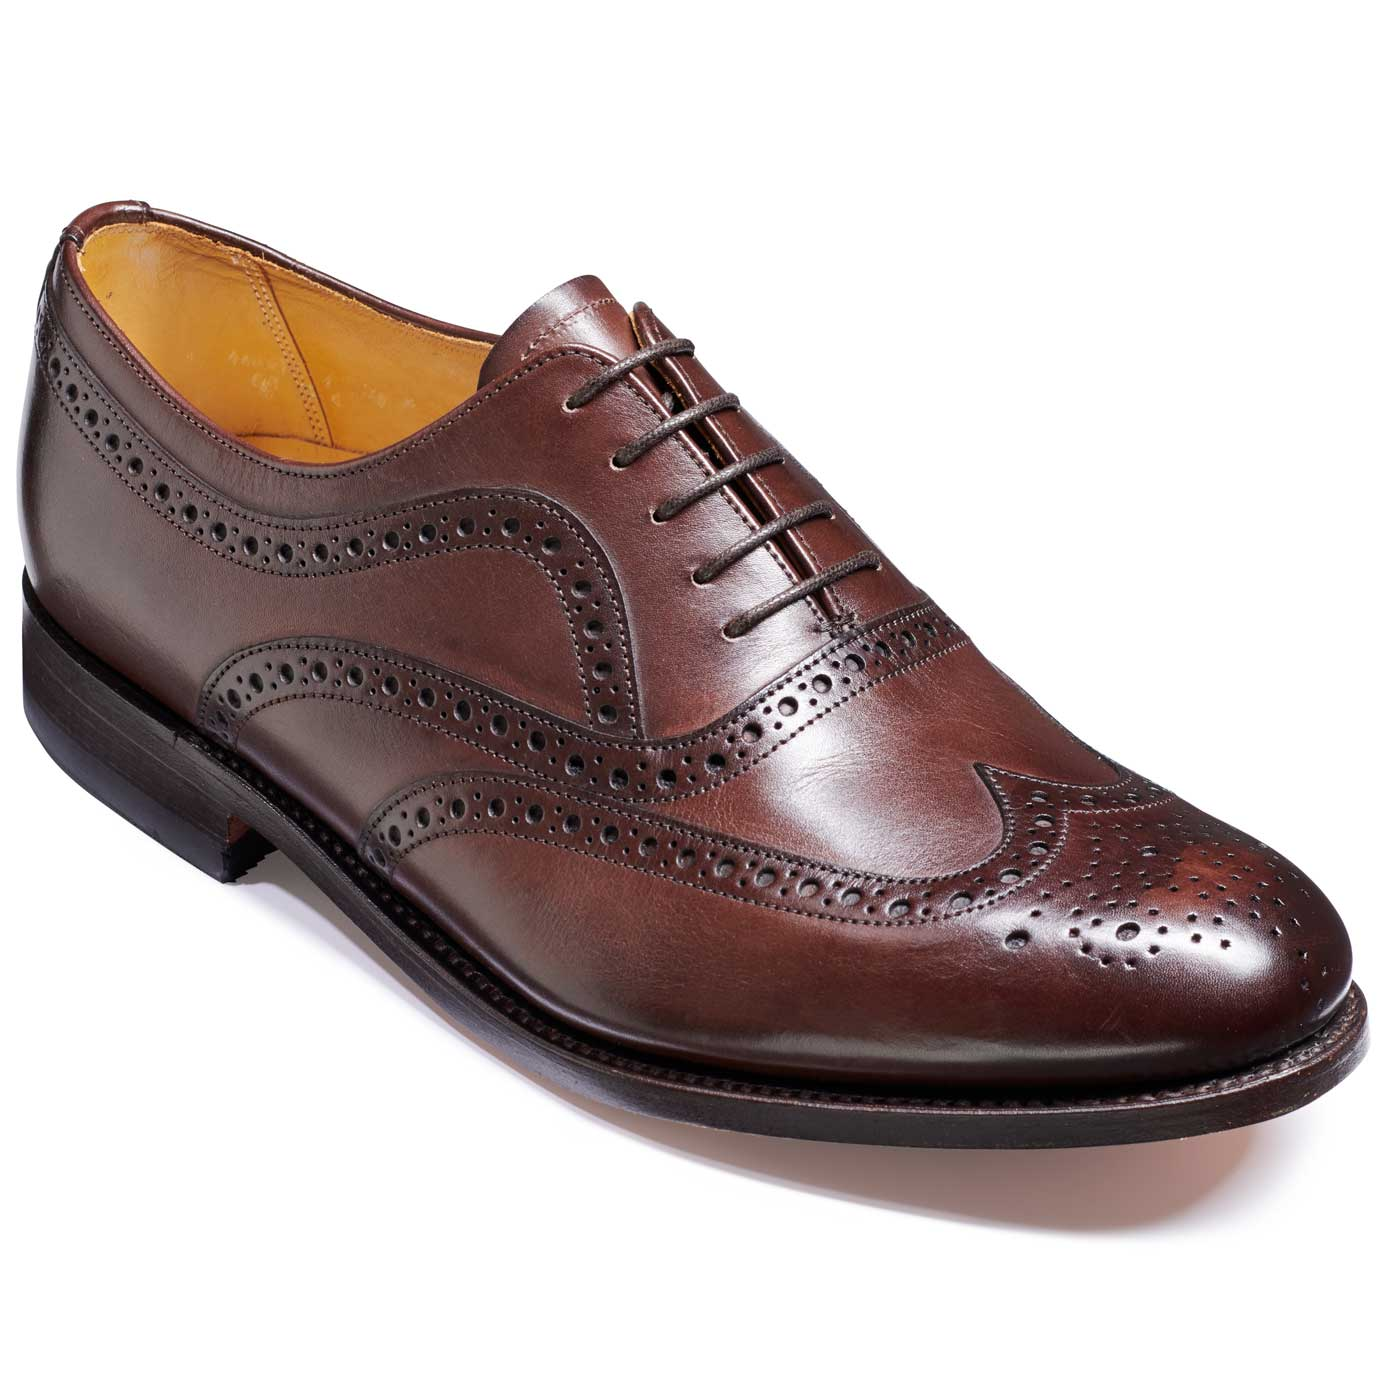 BARKER Southport Shoes - Mens Oxford